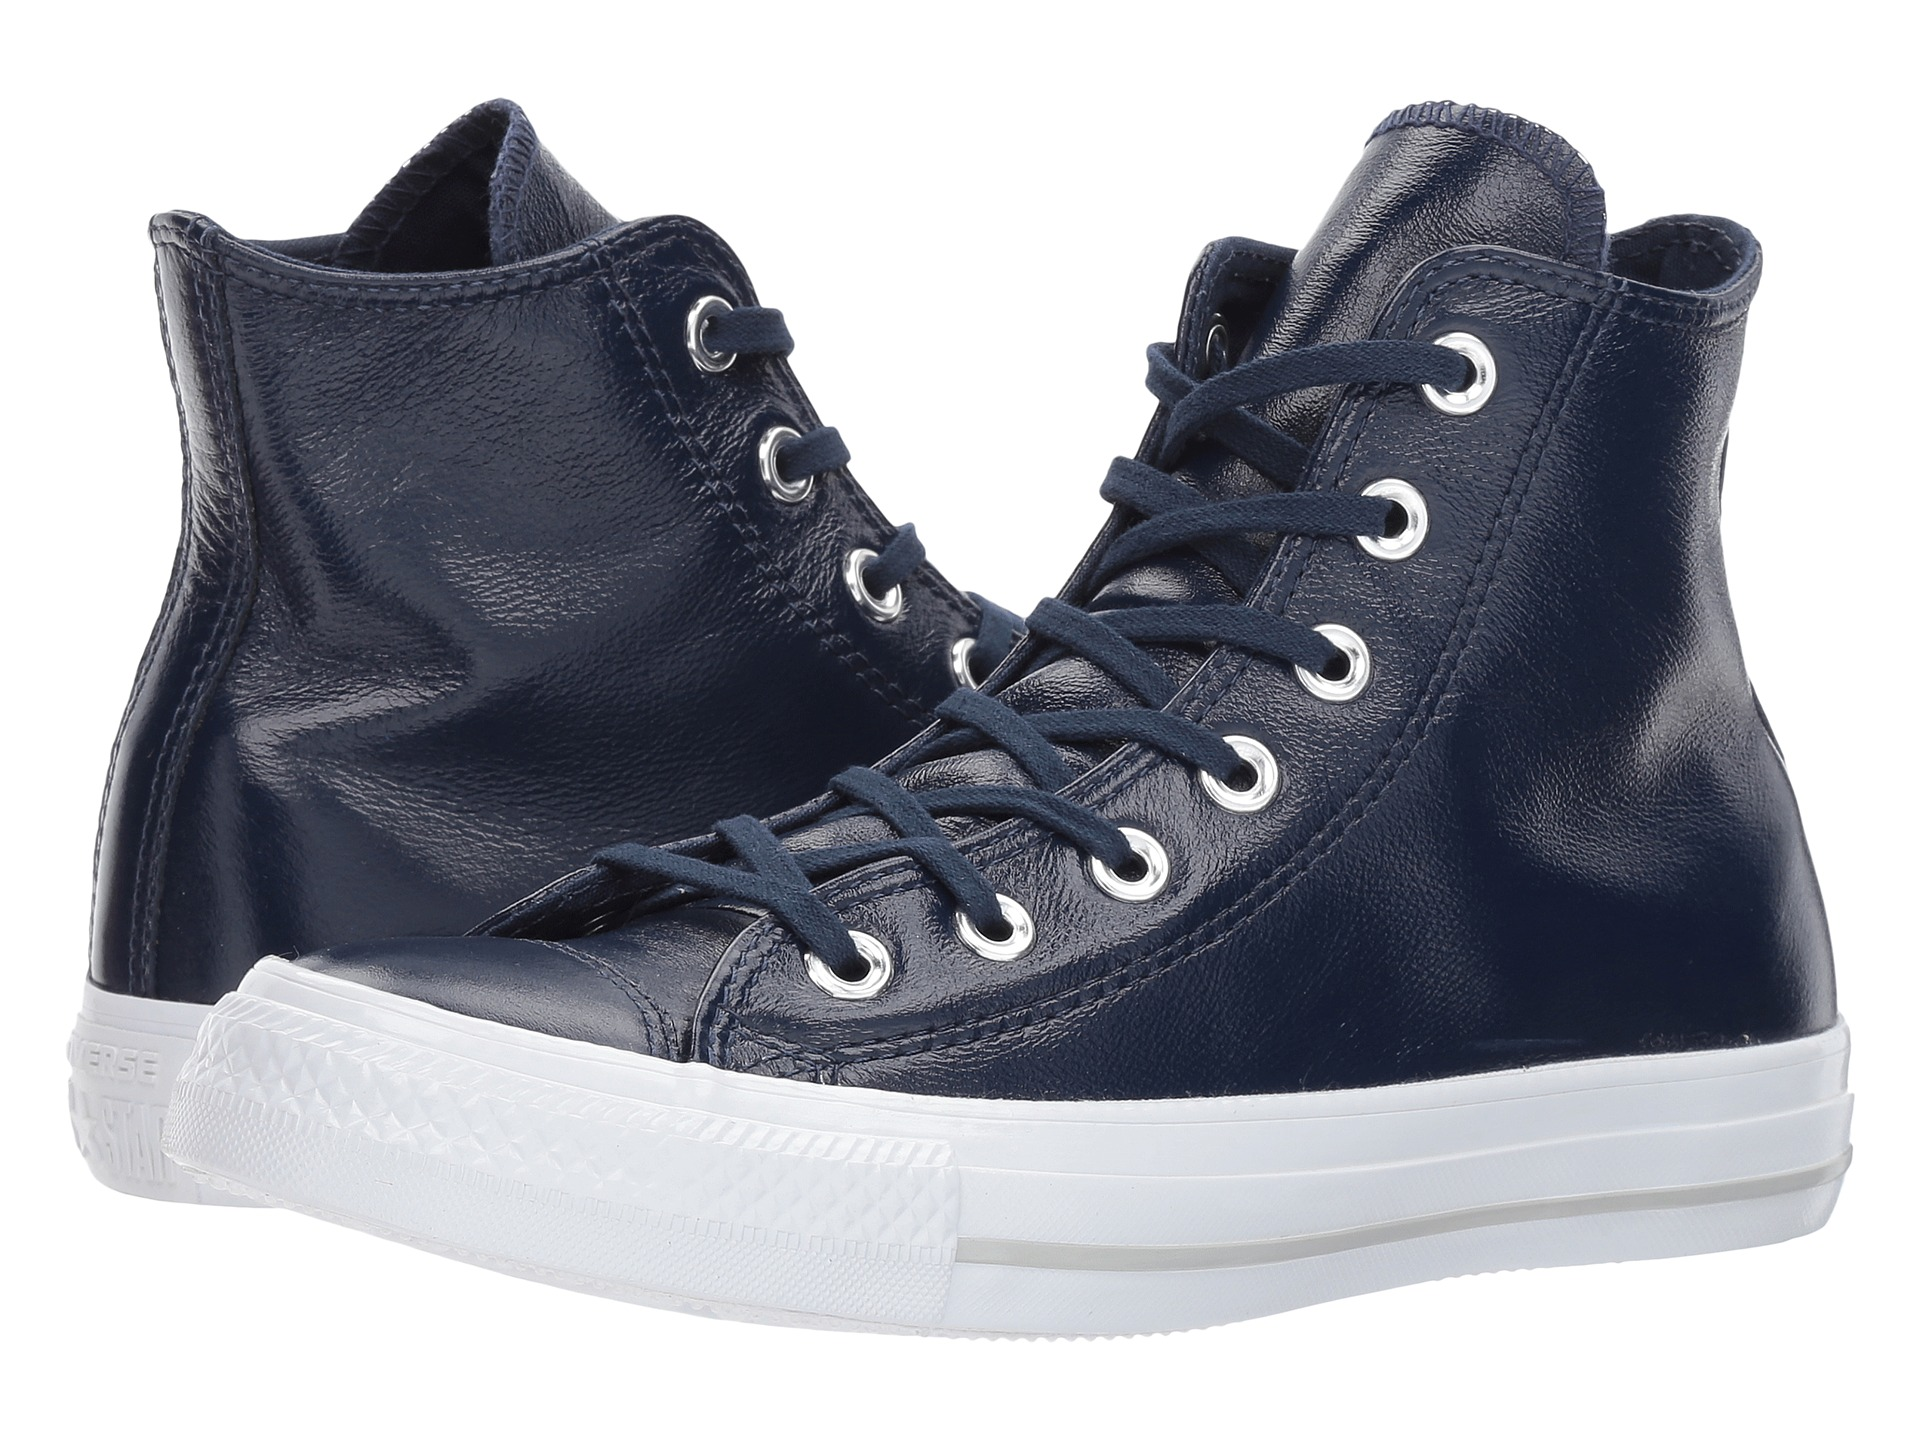 ALL STAR HI PATENT/SUEDE - FOOTWEAR - High-tops & sneakers Converse For Nice Cheap Price n9Rbm